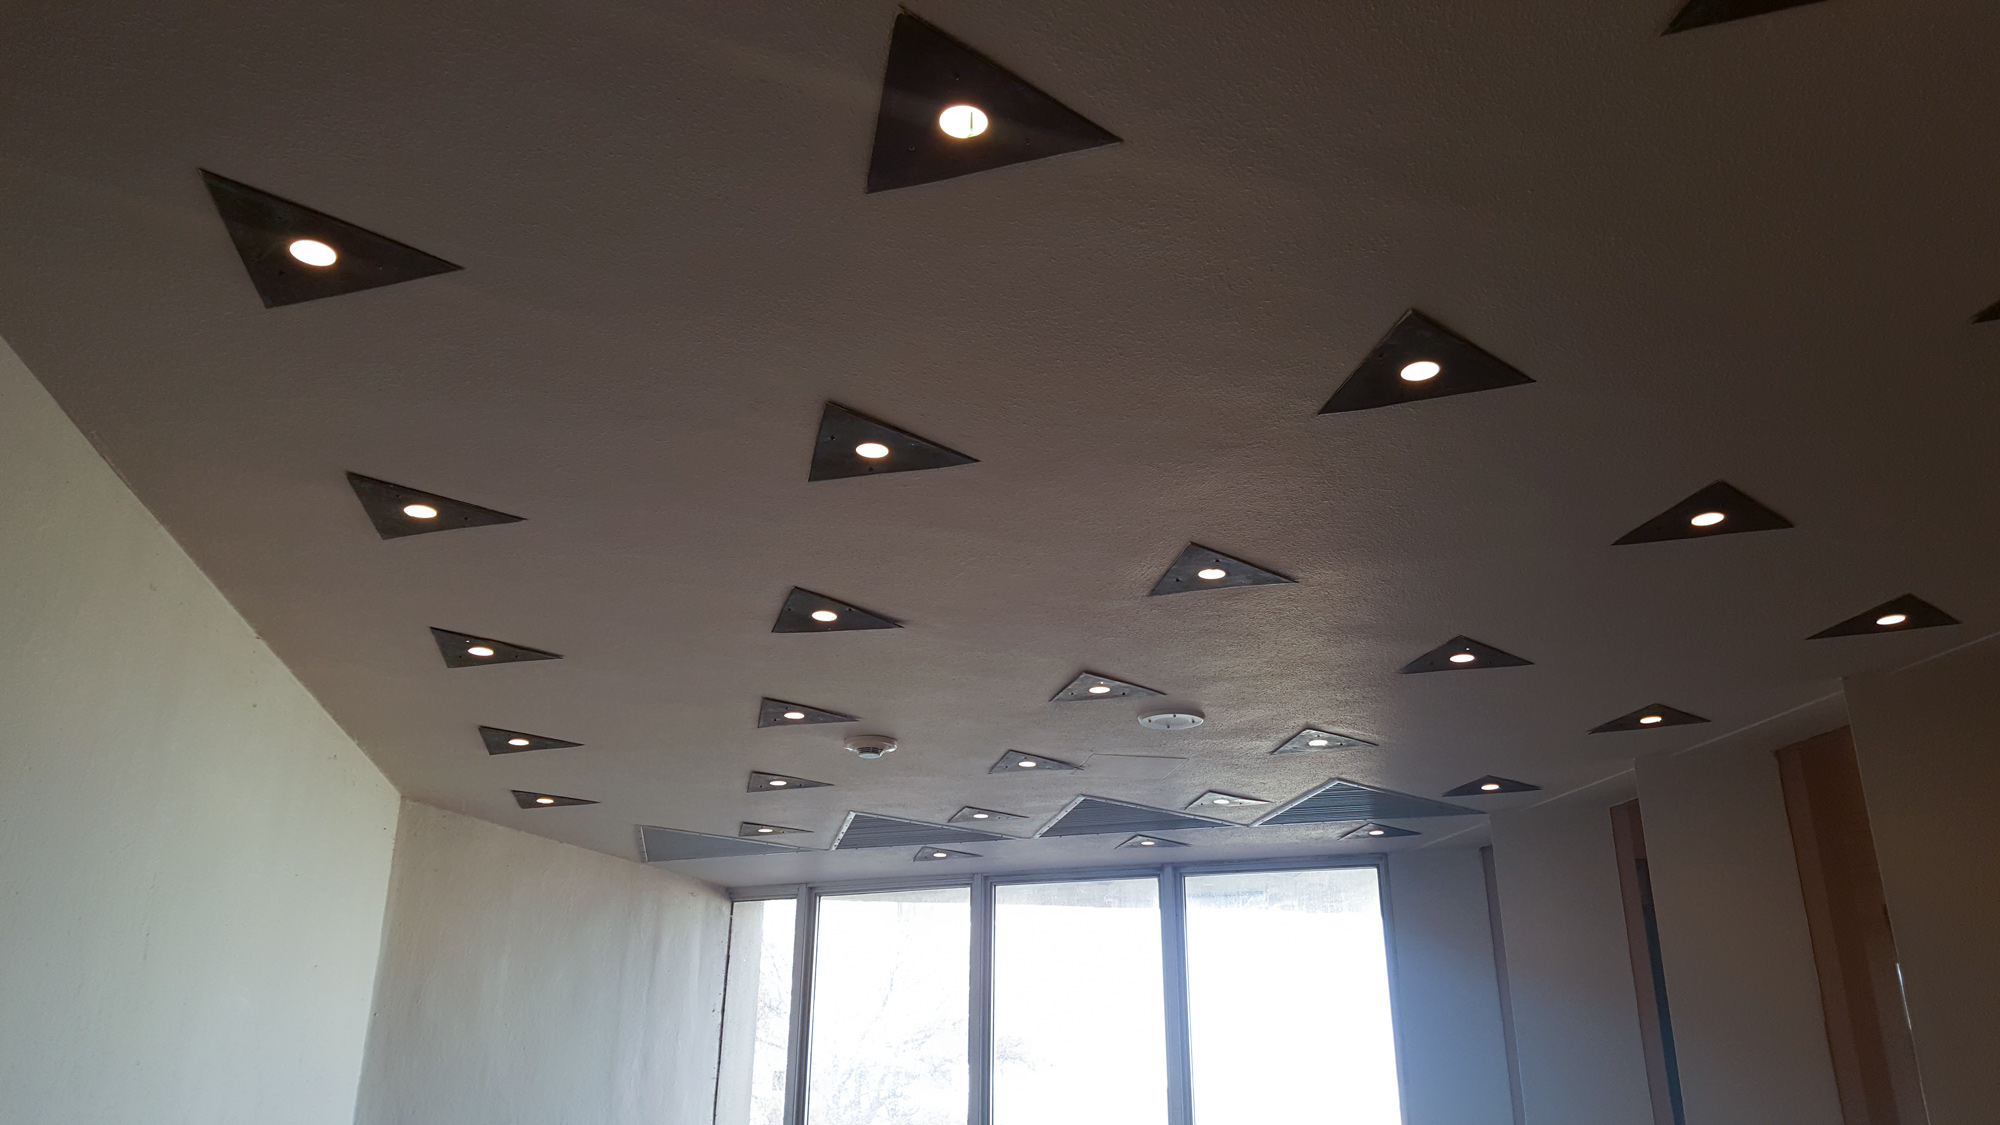 All the lights and air returns in the Price Tower were like these triangles!